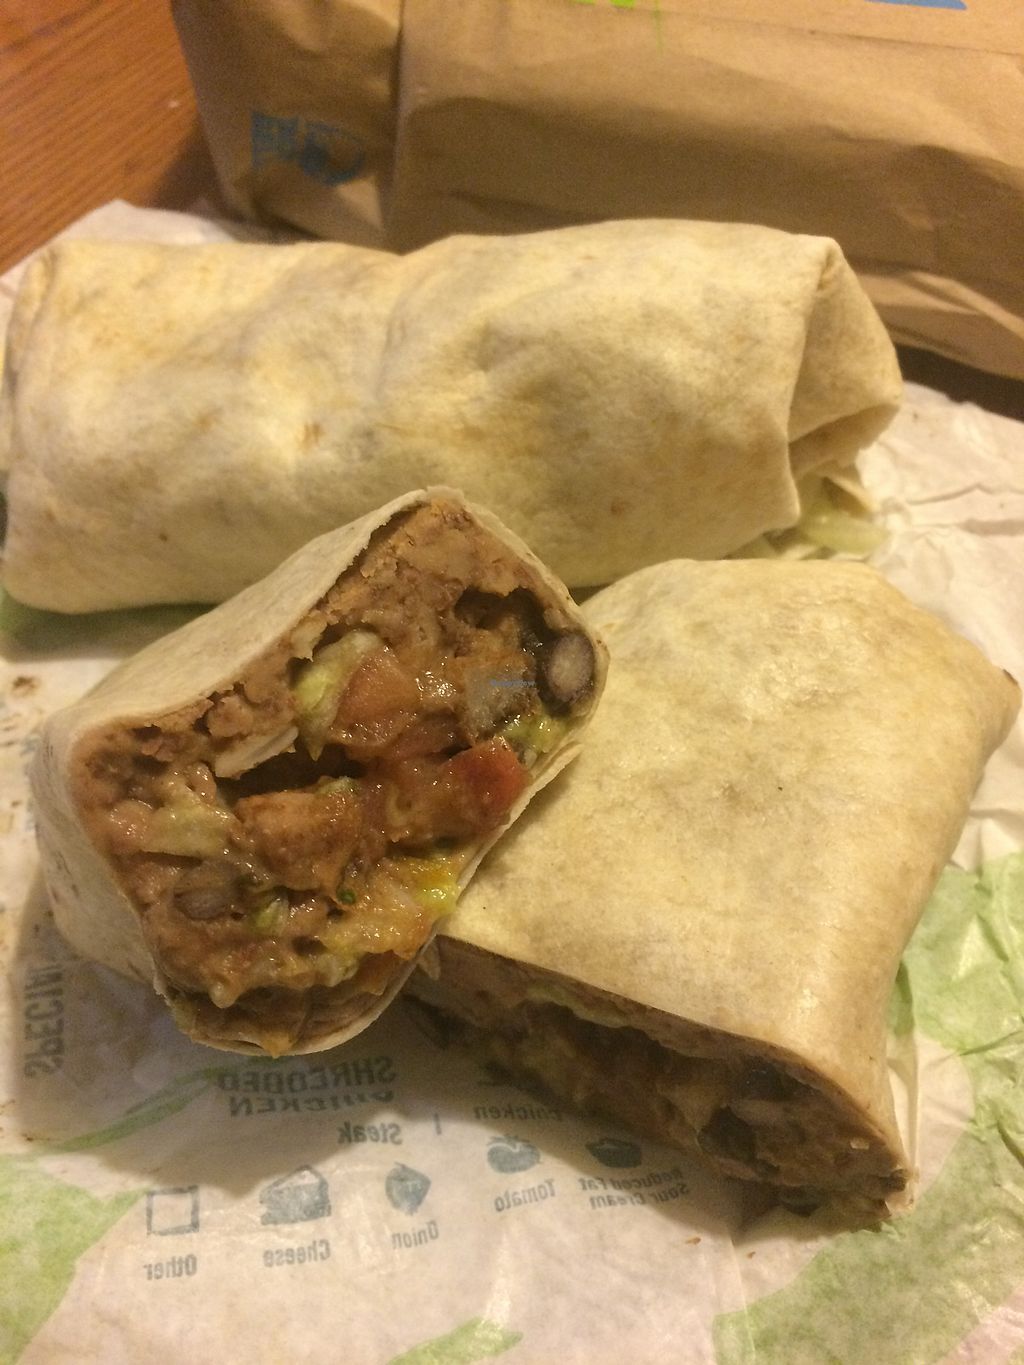 """Photo of Taco Bell  by <a href=""""/members/profile/fruitiJulie"""">fruitiJulie</a> <br/>Vegan burrito $4 <br/> April 30, 2018  - <a href='/contact/abuse/image/102726/392804'>Report</a>"""